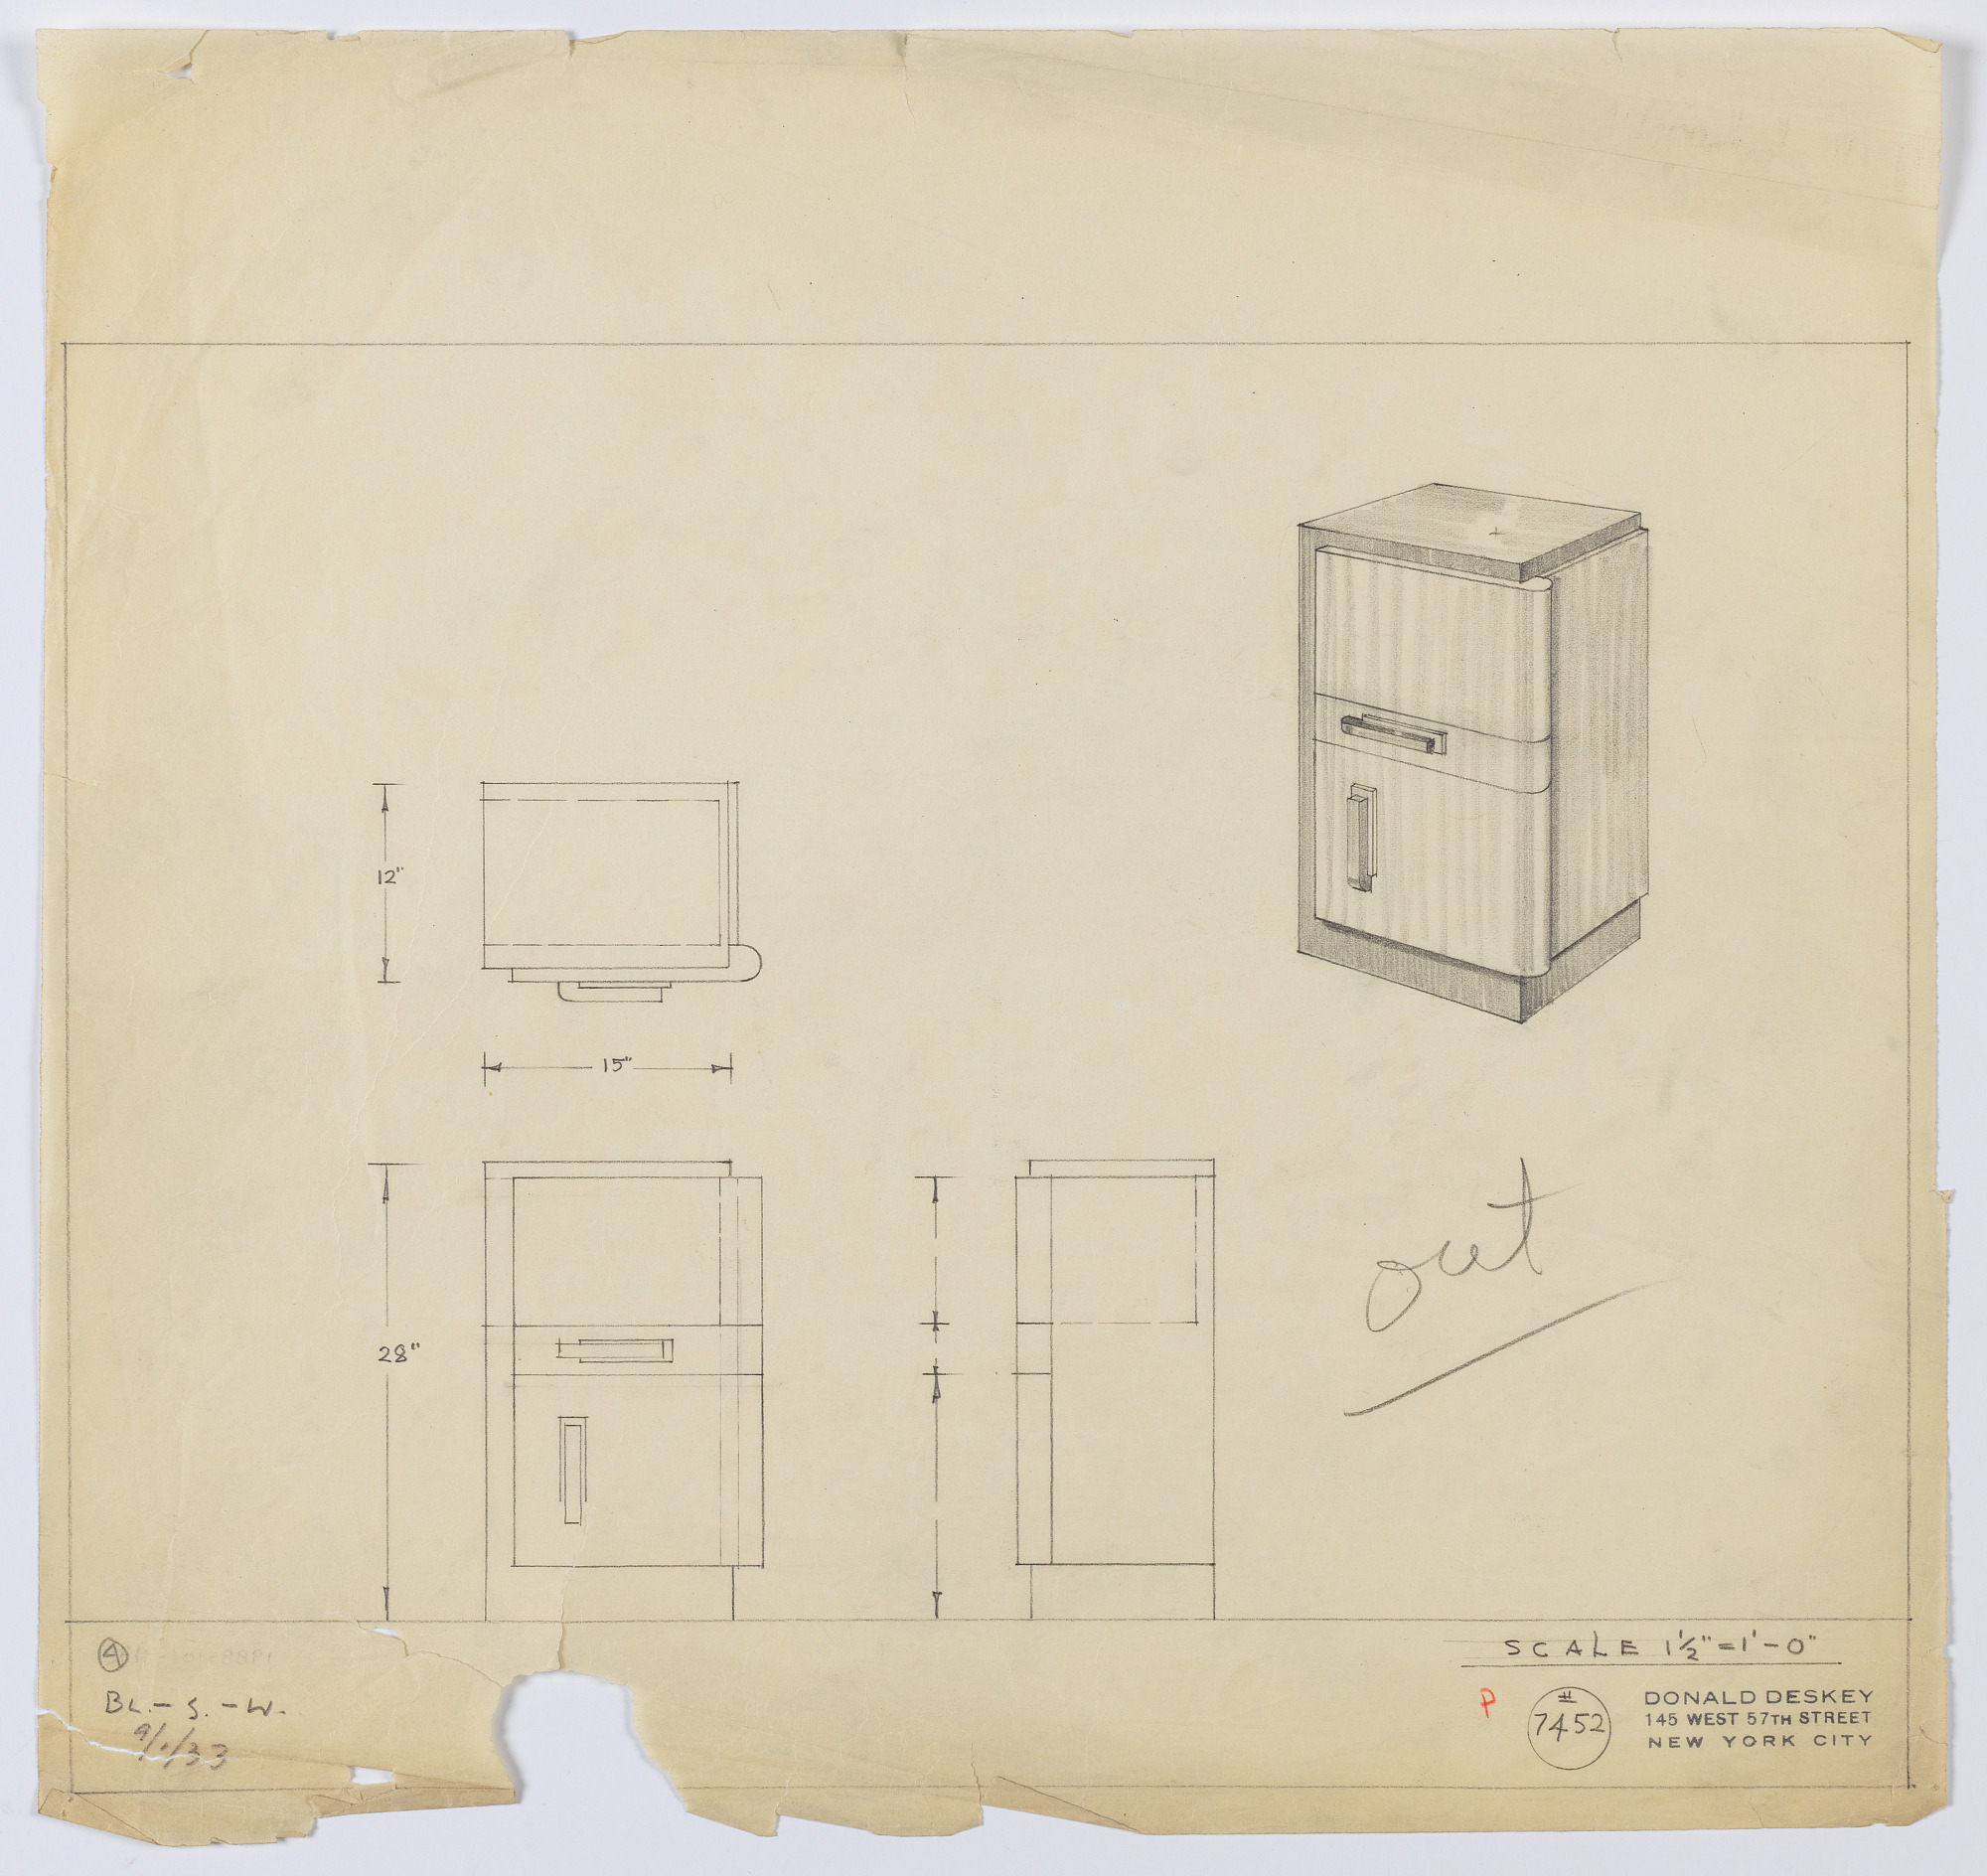 Design for an End Table in Blond and Dark Wood with Central Drawer and Closed Cabinet